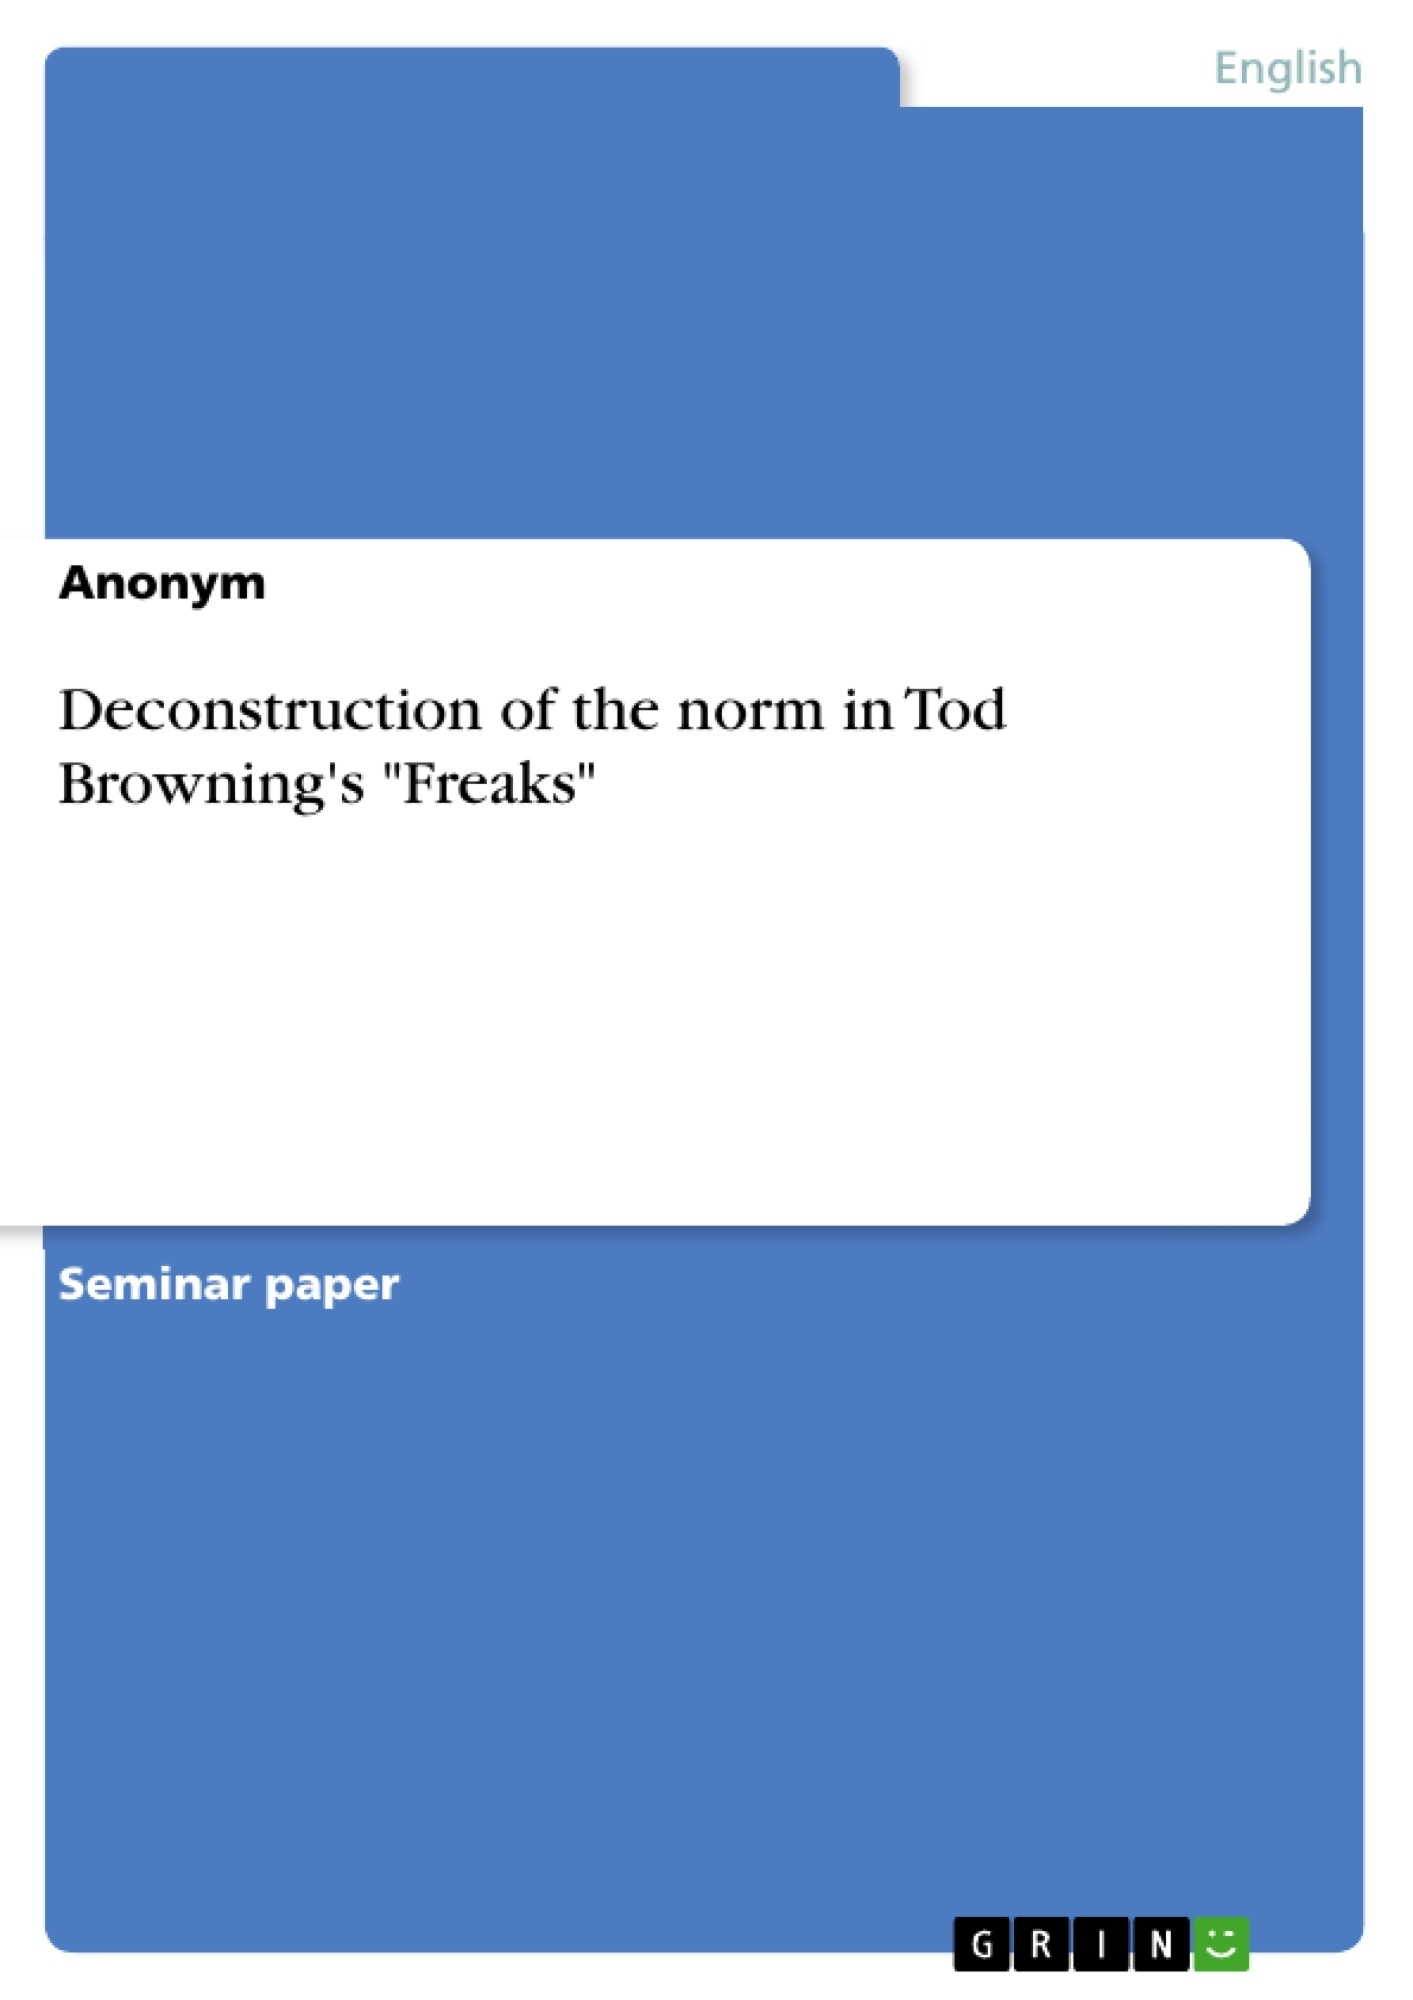 """Title: Deconstruction of the norm in Tod Browning's """"Freaks"""""""